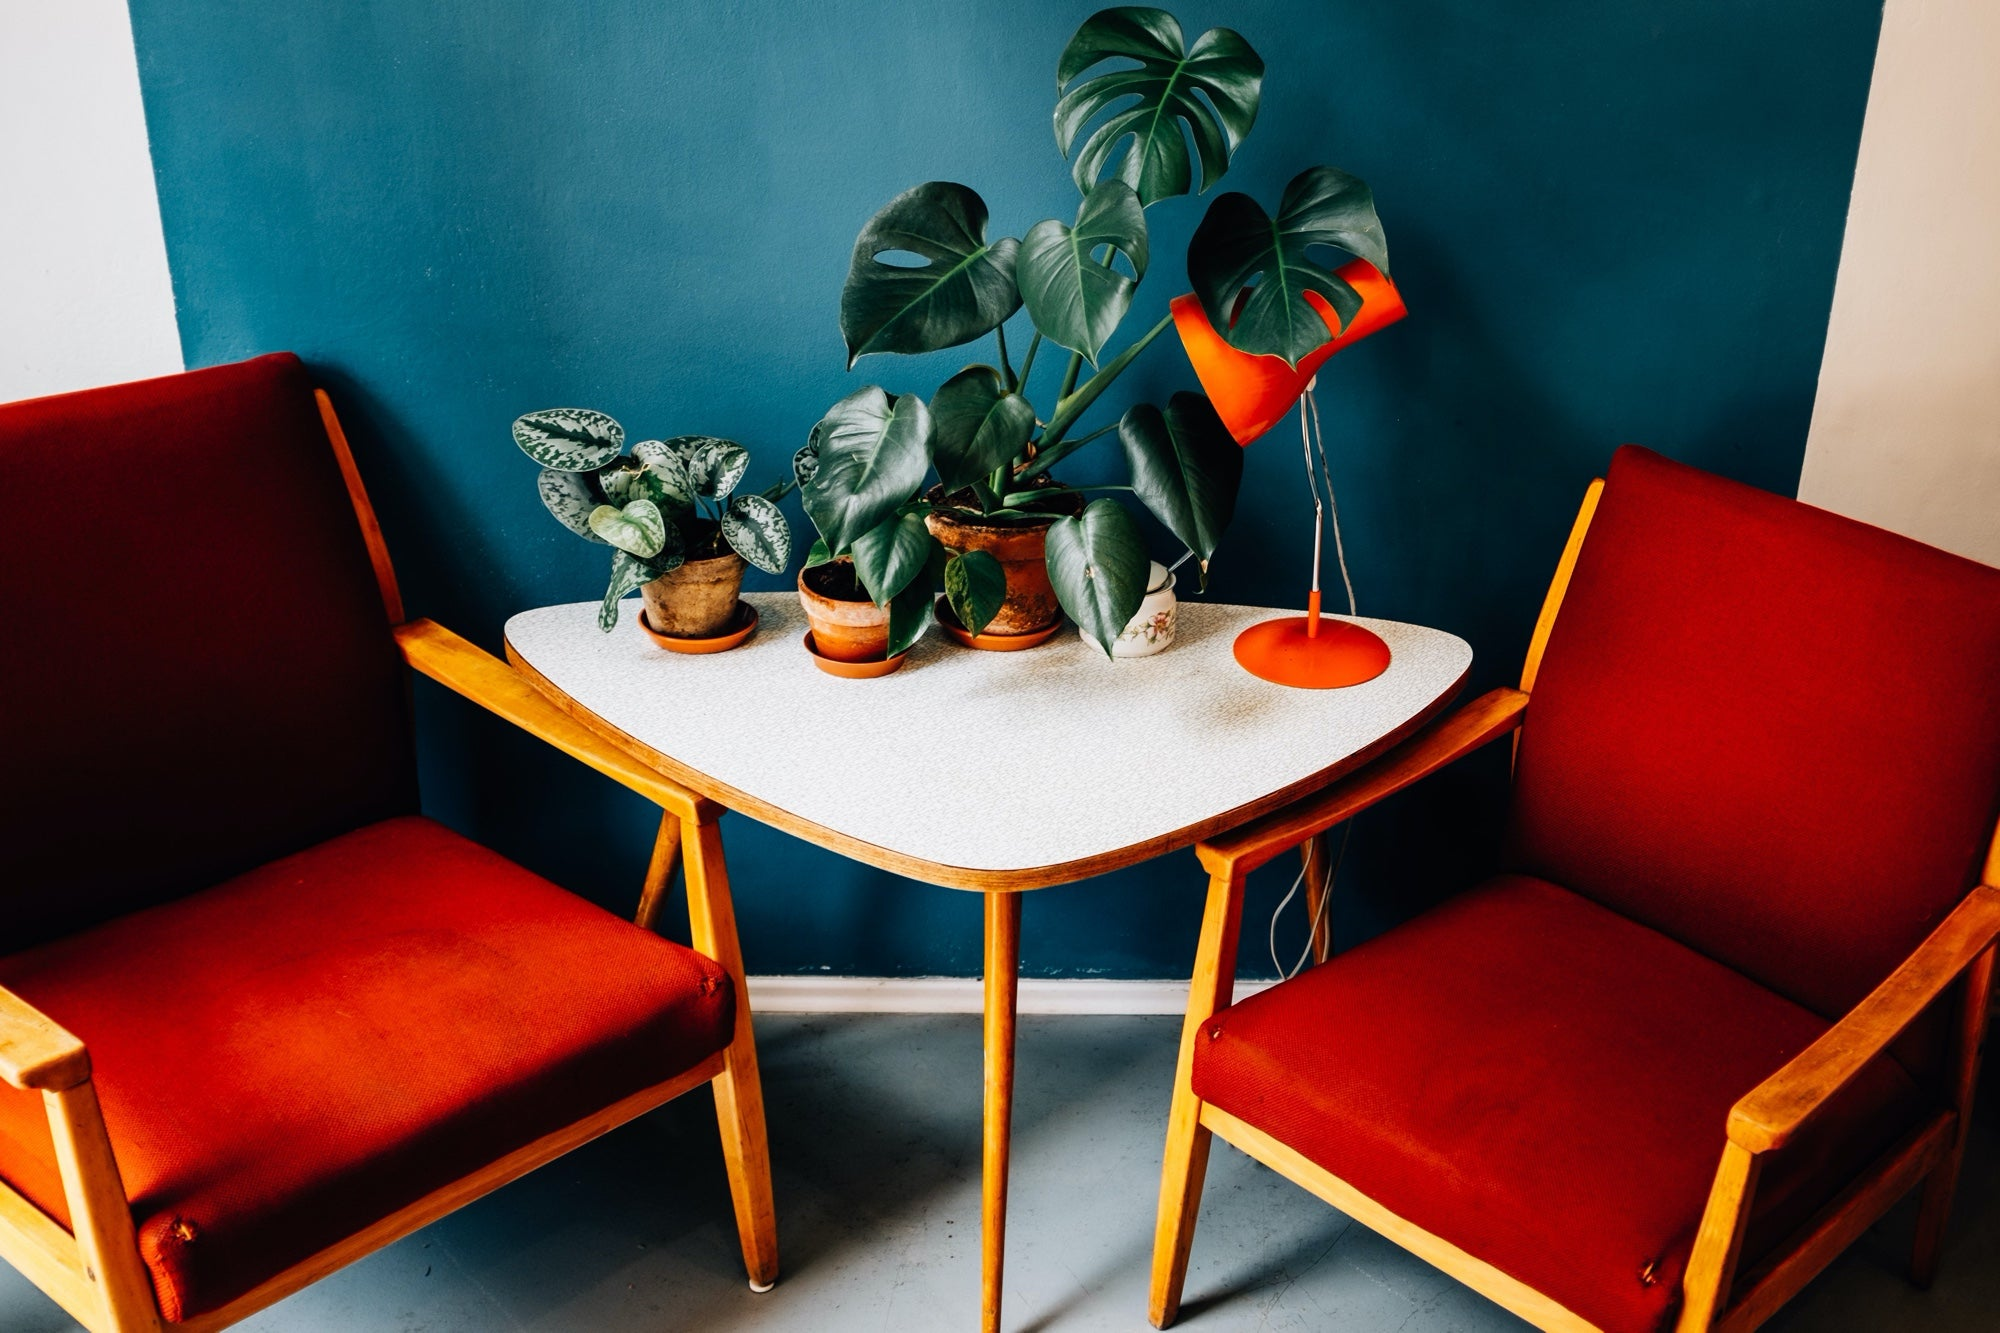 Two red chairs flank a table covered in plants